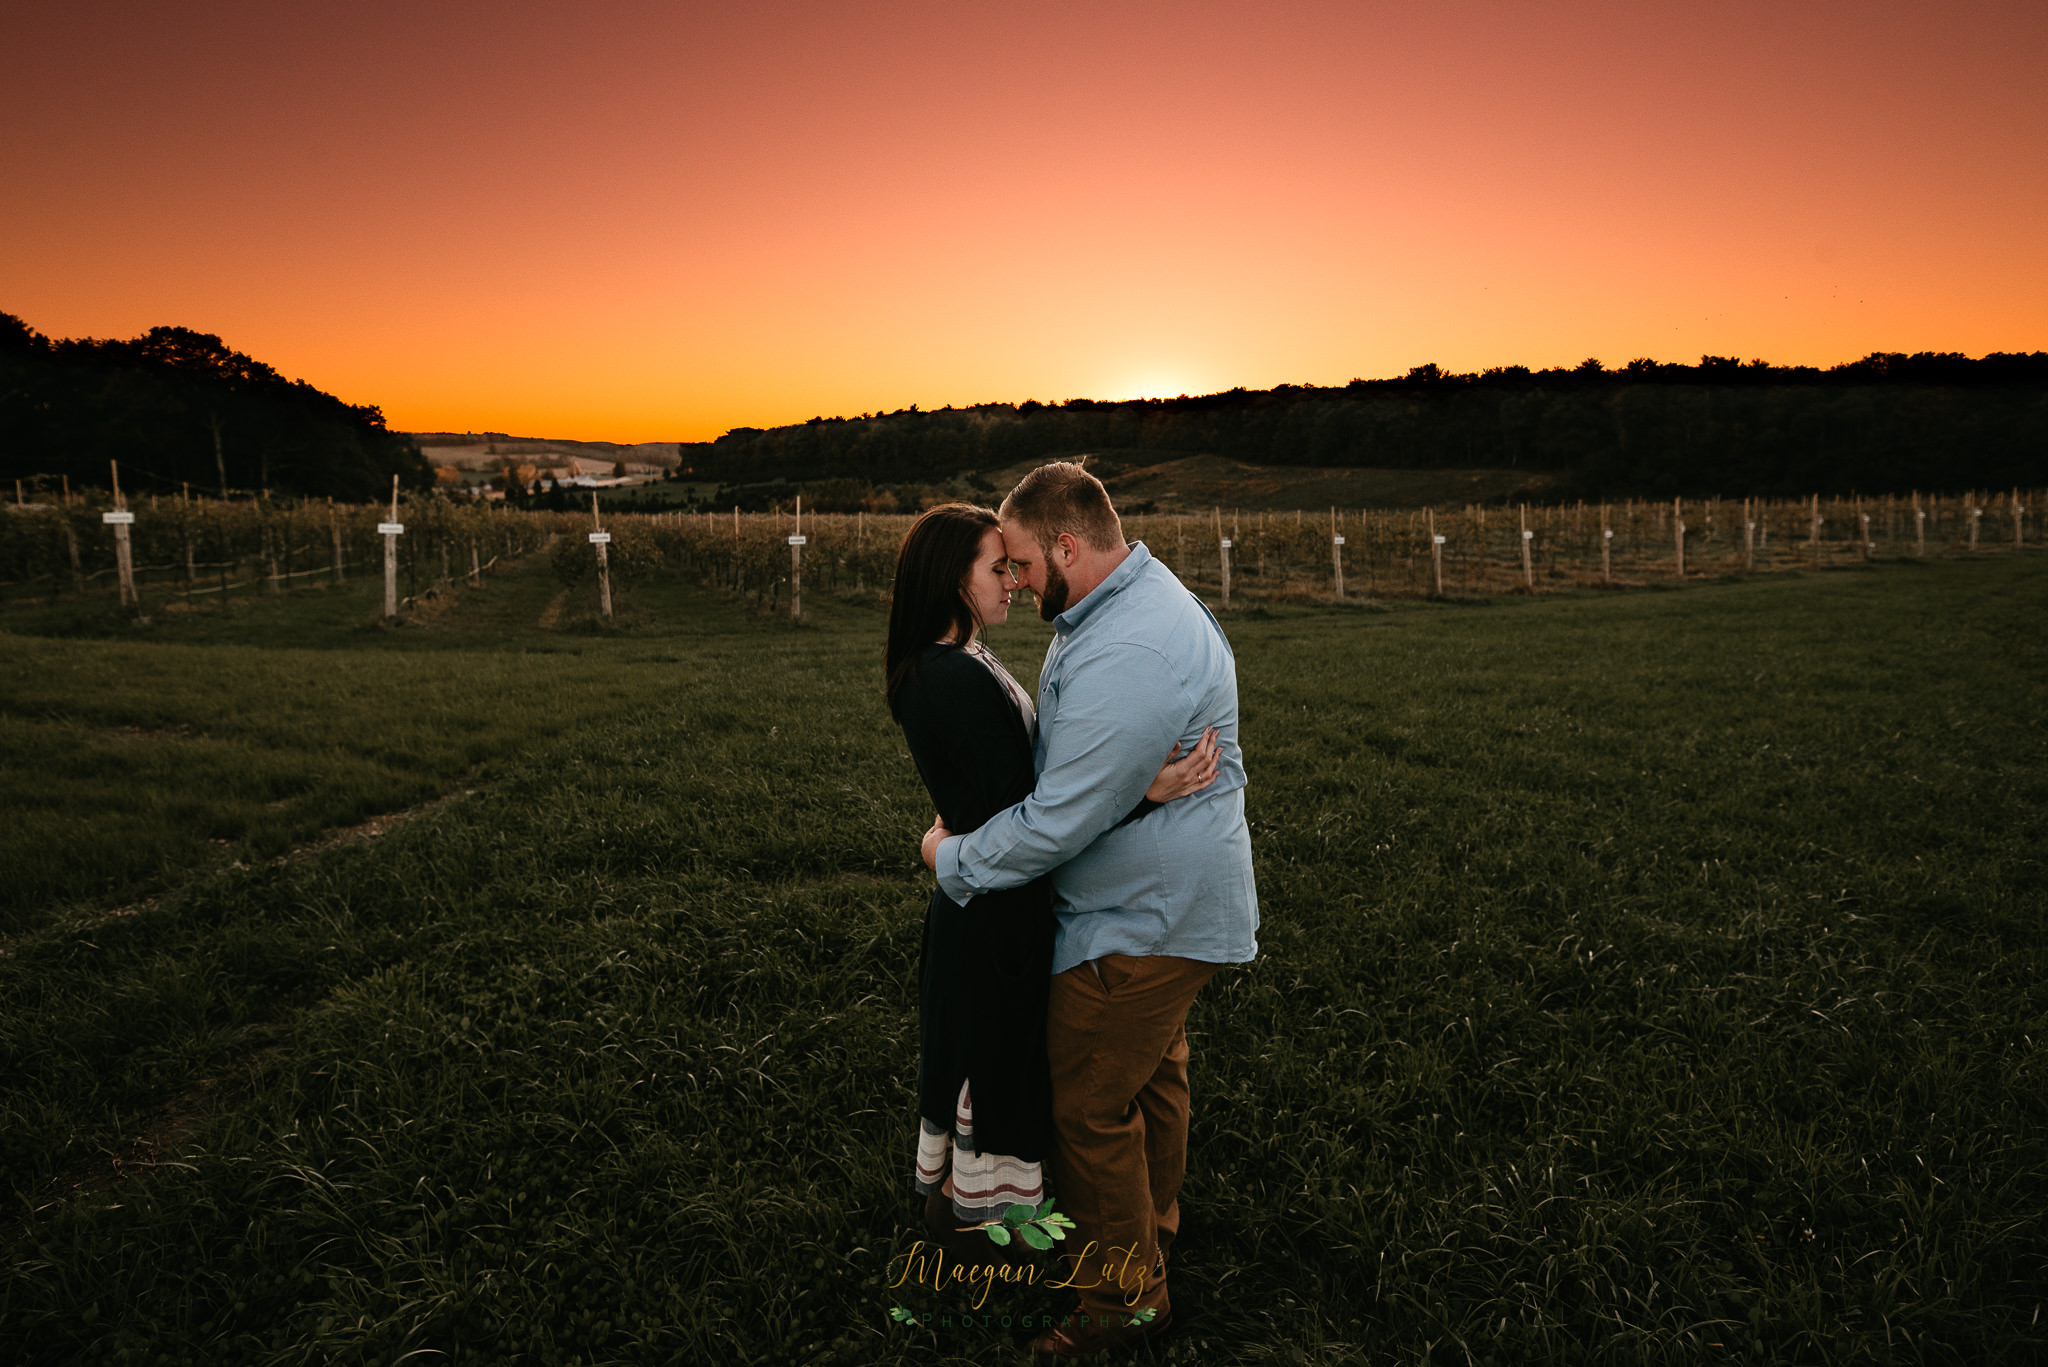 Poconos-NEPA-Wedding-Engagement-Photographer-session-at-Blue-Ridge-Estate-Vineyard-Winery-24.jpg